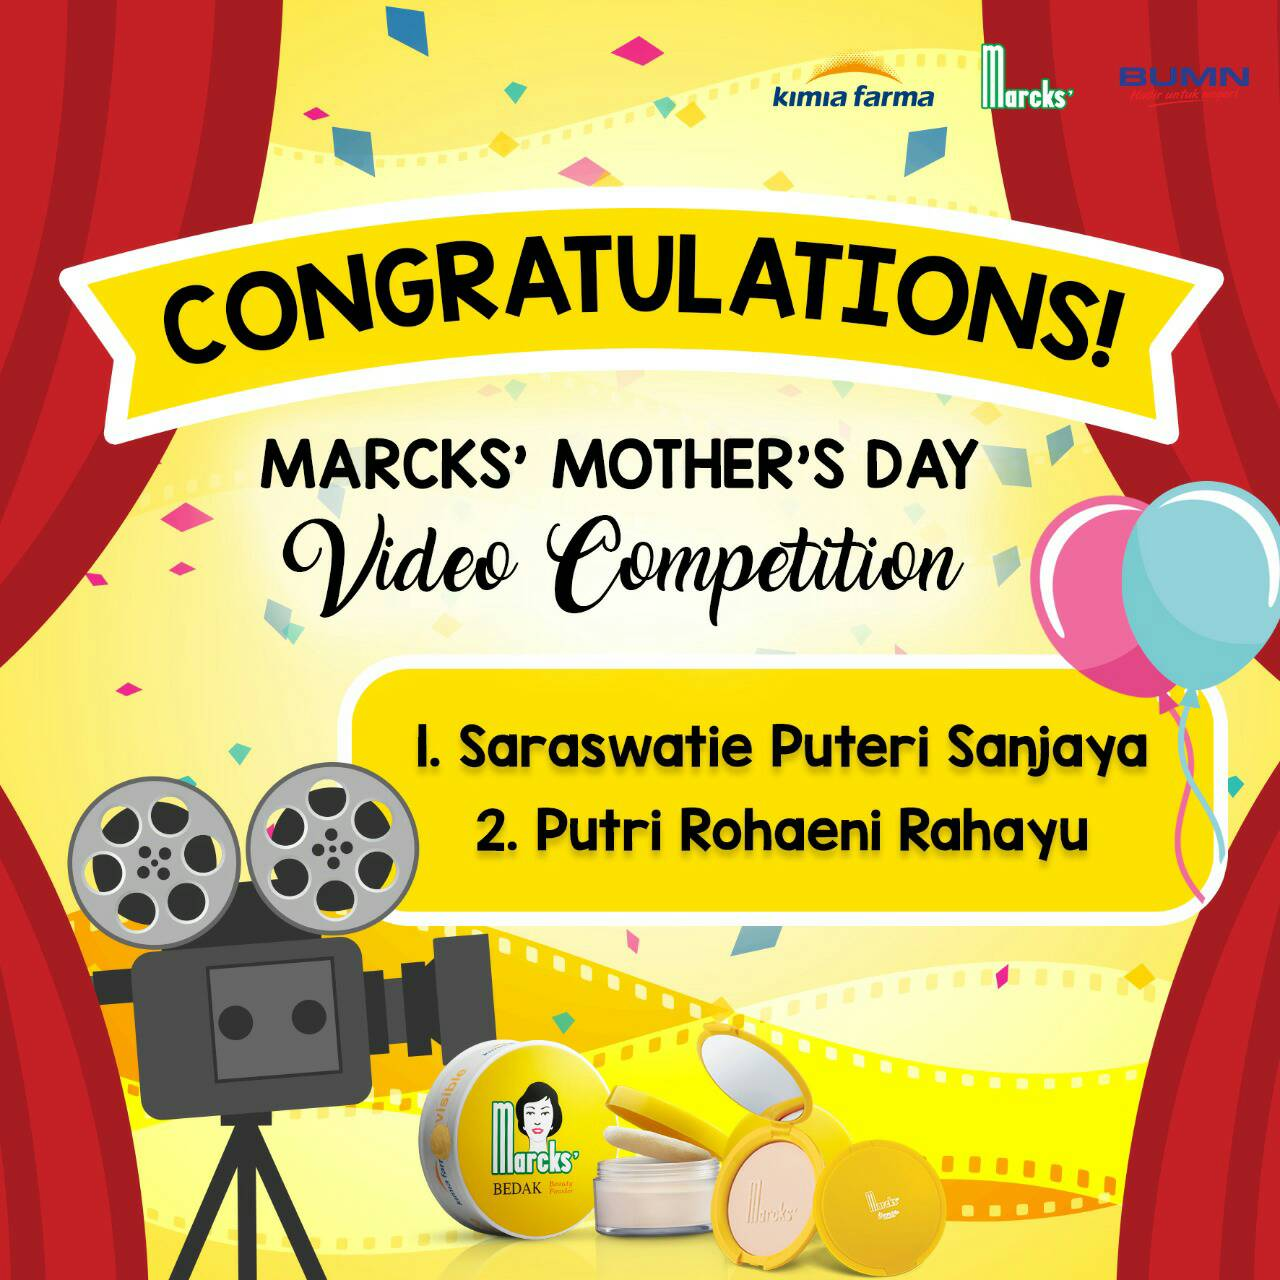 Marck's Video Competition